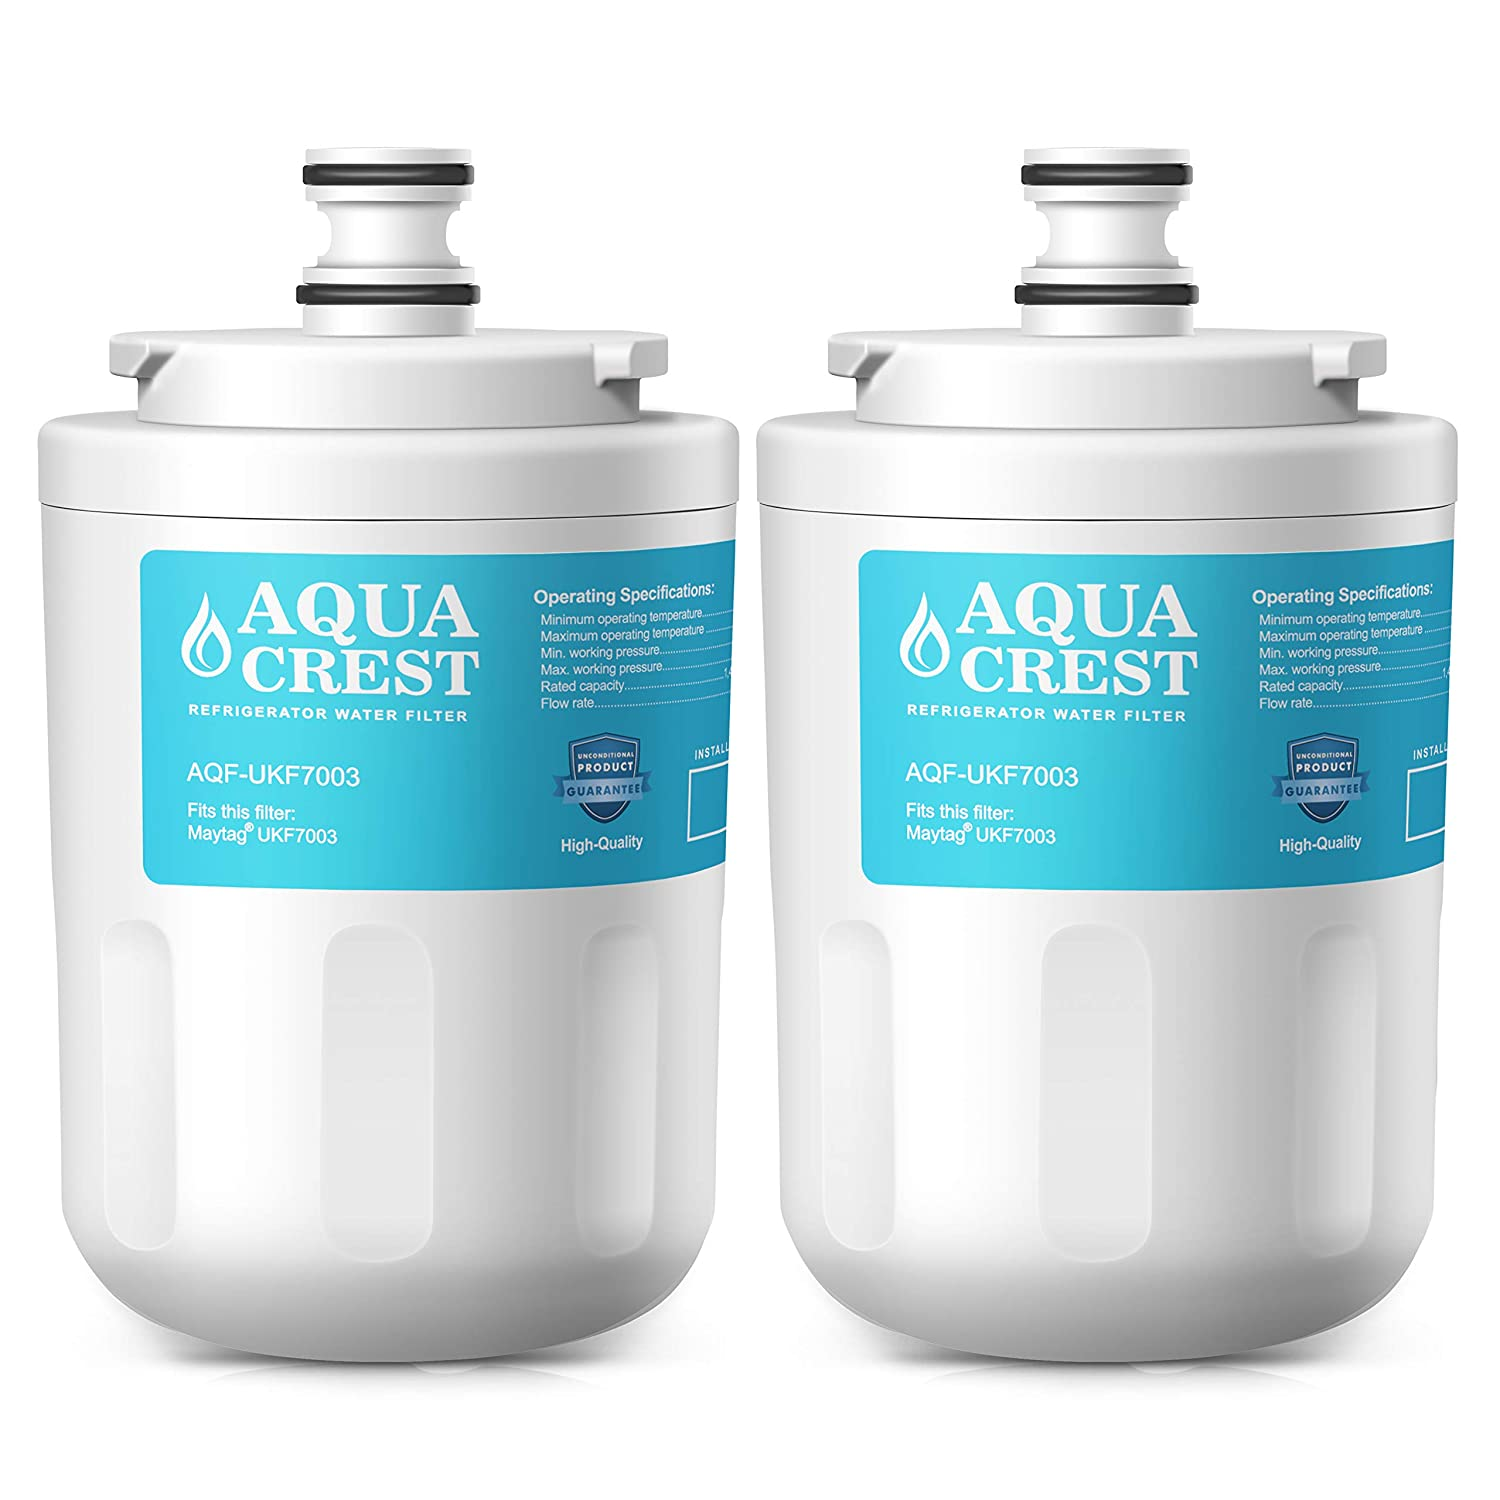 AQUACREST Replacement UKF7003 Refrigerator Water Filter, Compatible with Maytag UKF7003, UKF7002AXX WF288, Whirlpool EDR7D1, EveryDrop Filter 7 (Pack of 2)